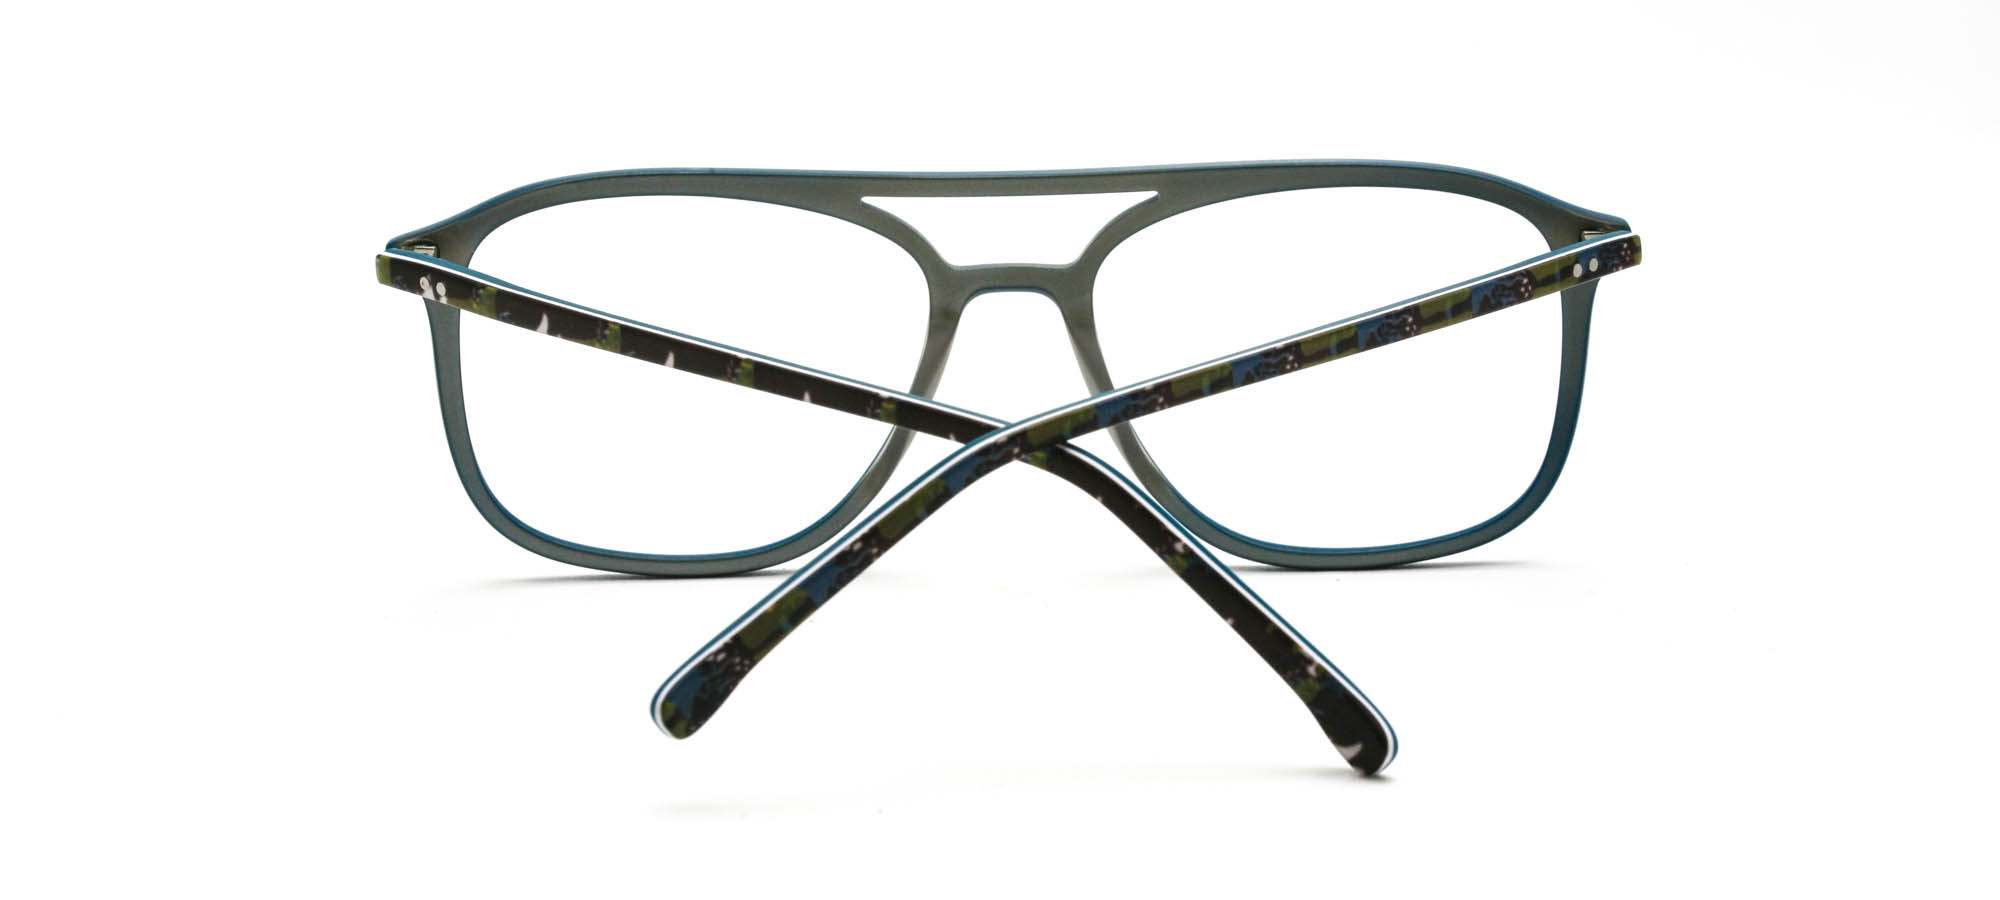 Unisex Eyeglasses Clearance BA96026-MN for Adults